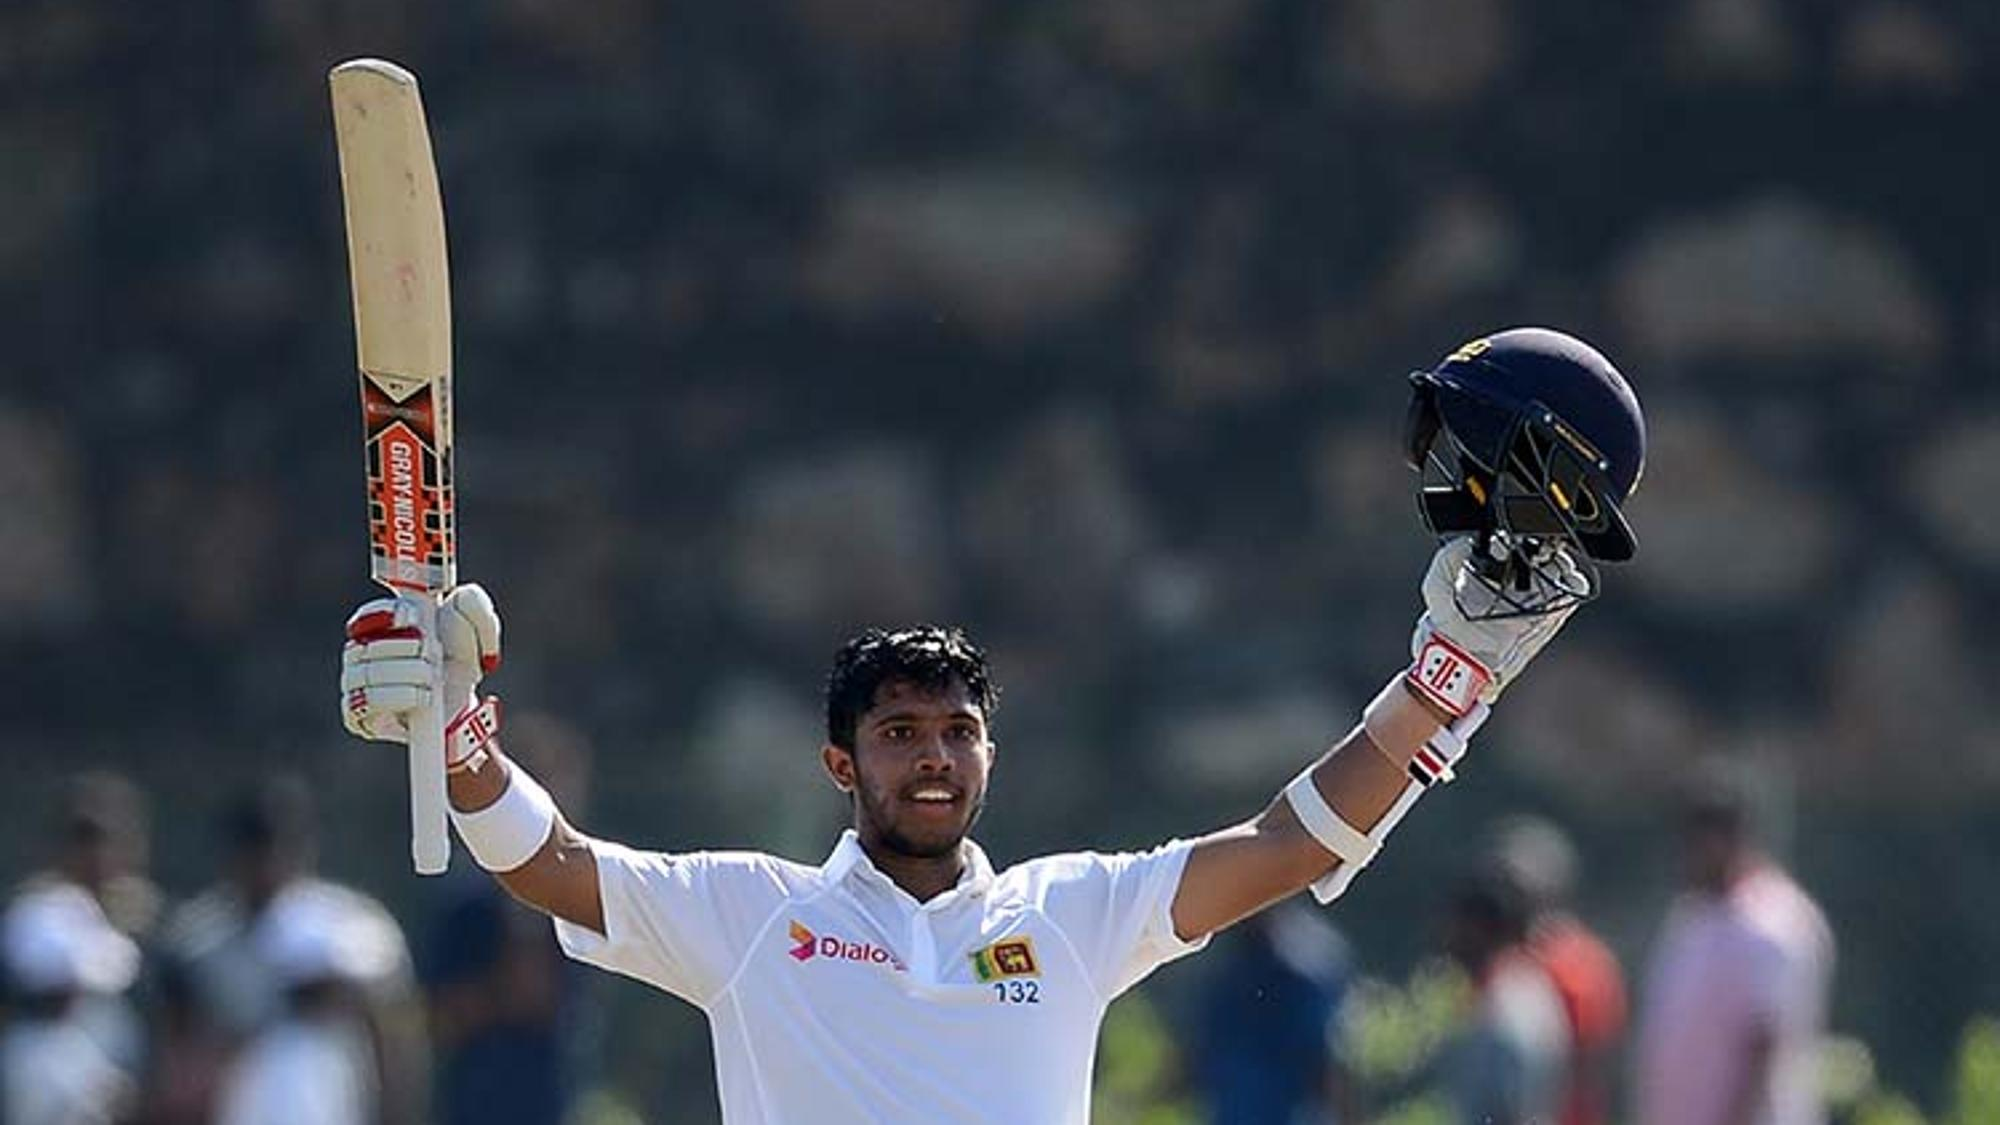 Kusal_Mendis_celebrates_reaching_his_century_on_Day_1_in_Galle